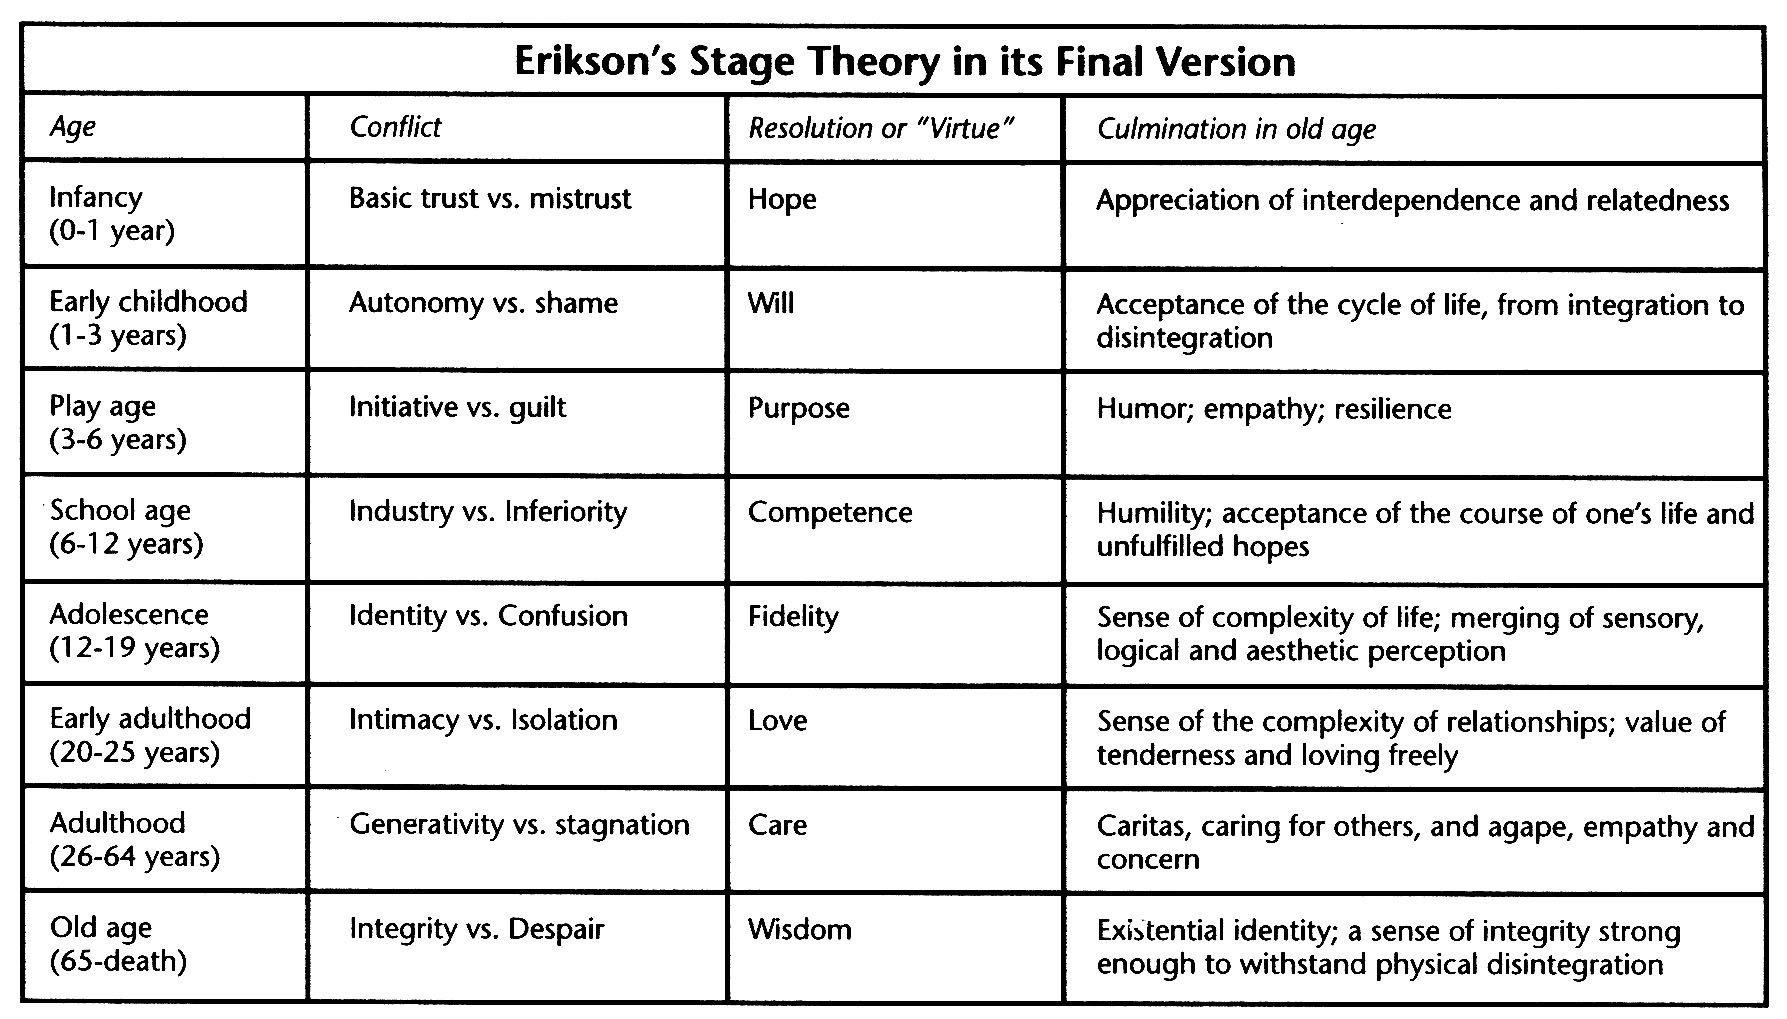 Erikson's Psychosocial Stages | in Chapter 11: Personality | from